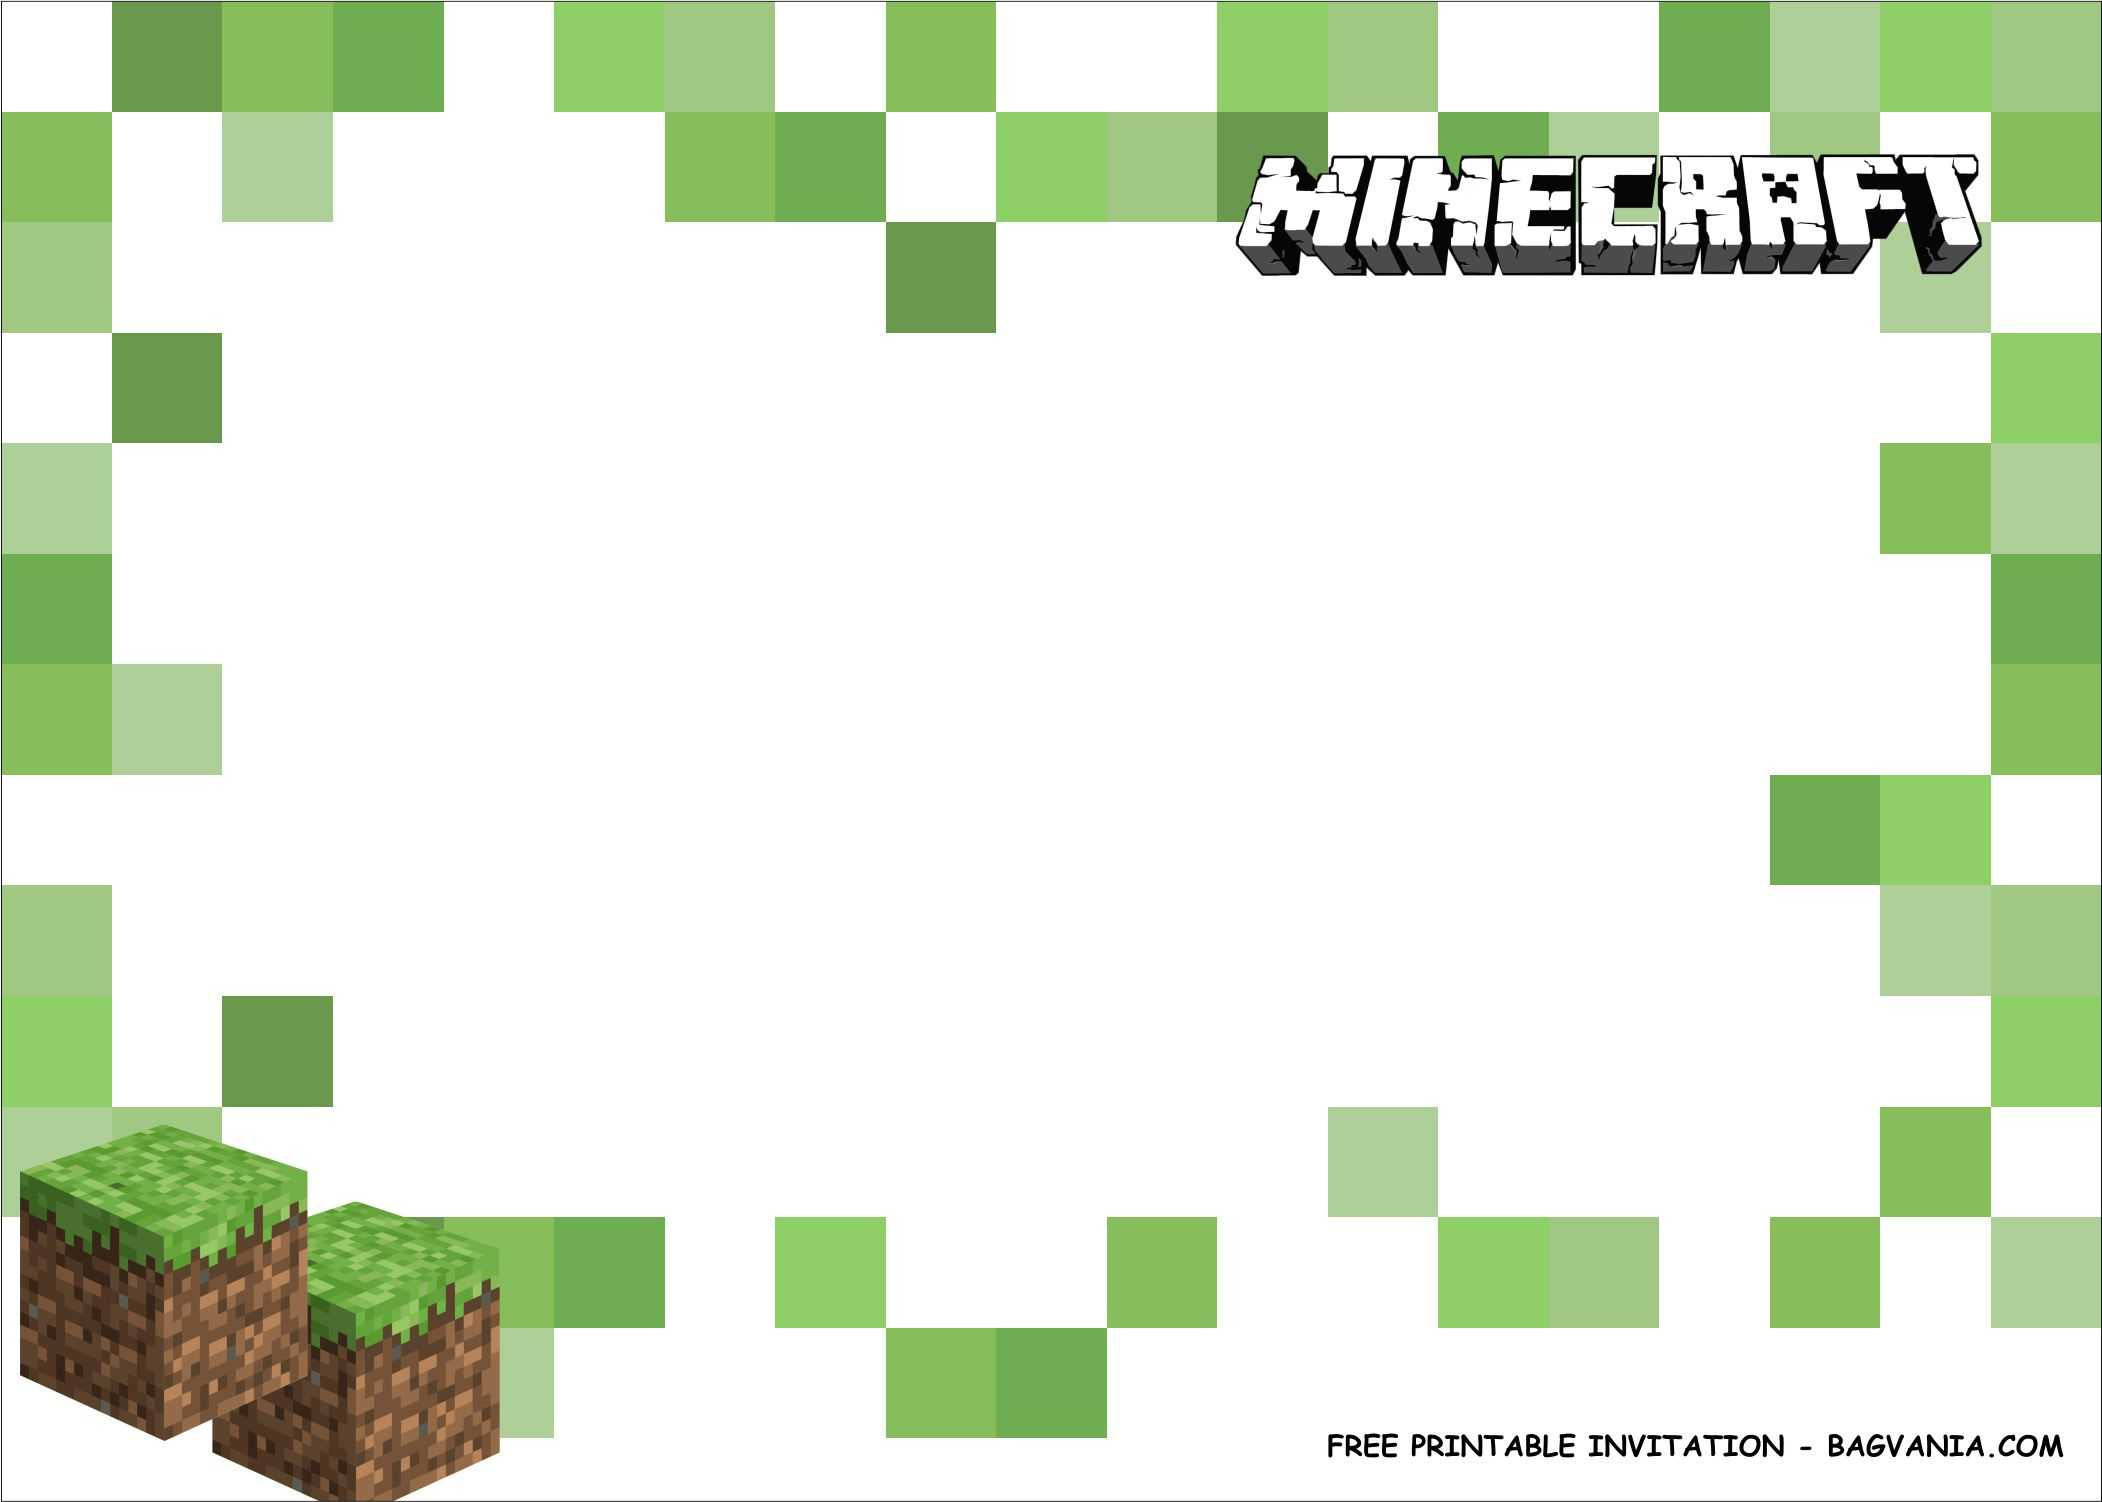 Free Printable) - Minecraft Birthday Party Kits Template Pertaining To Minecraft Birthday Card Template